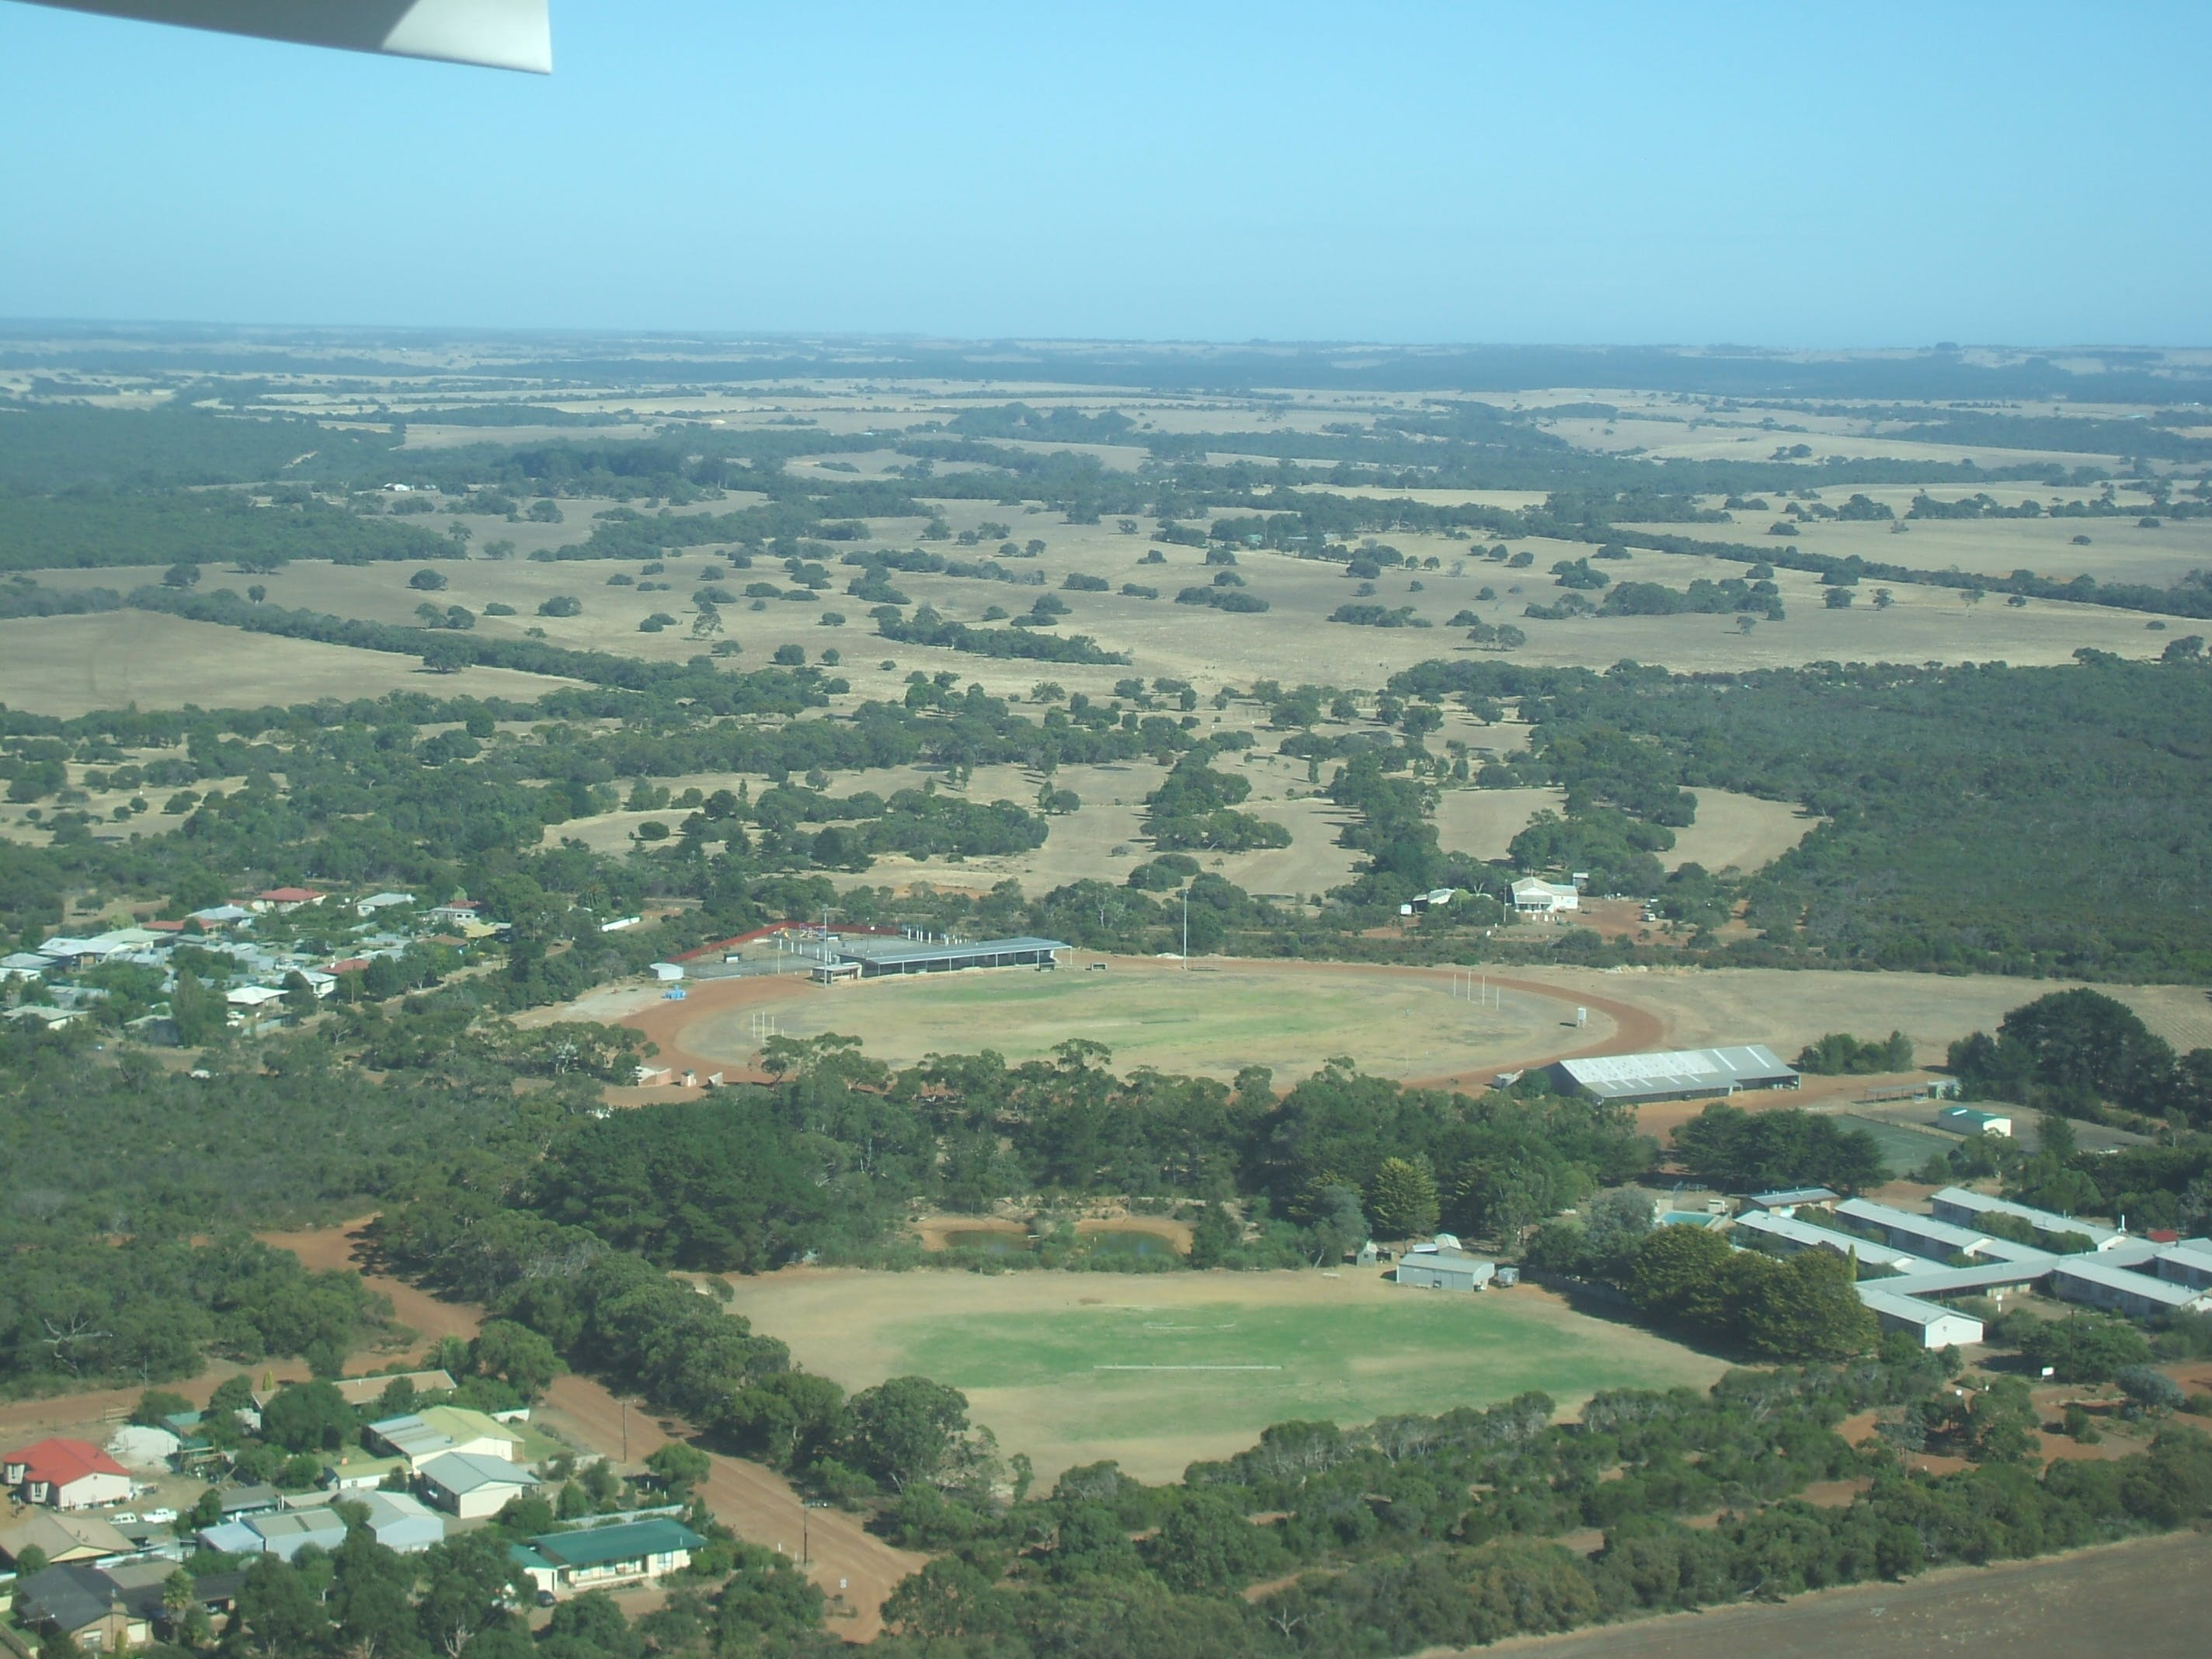 #Arial view of Parndana township in the heartland of Kangaroo Island